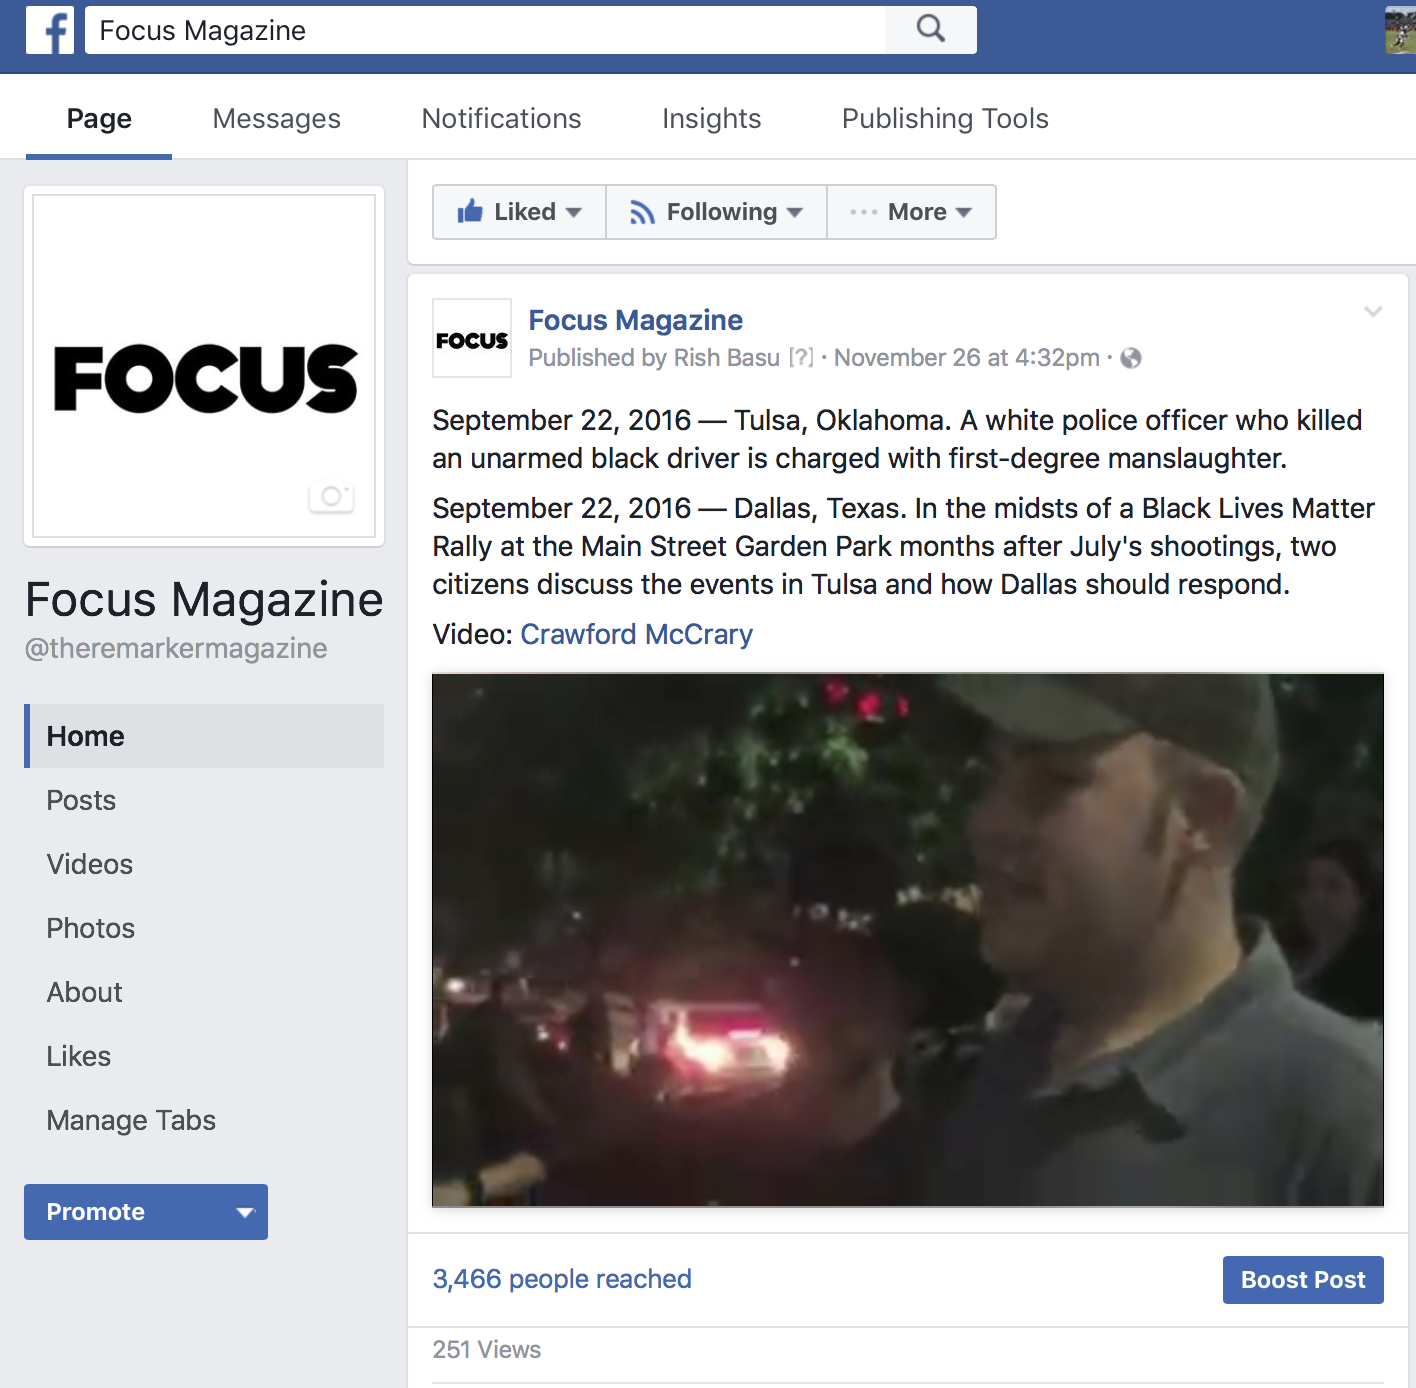 For one of  Focus Magazine's extra content posts, which contained a video of two Dallas citizens debating during a Black Lives Matter Protest, the reach was over 3,400 people. The increased circulation of the magazine's content was the main reason I decided to venture into online journalism.   Click here for quick access to all the videos the Facebook account has posted.